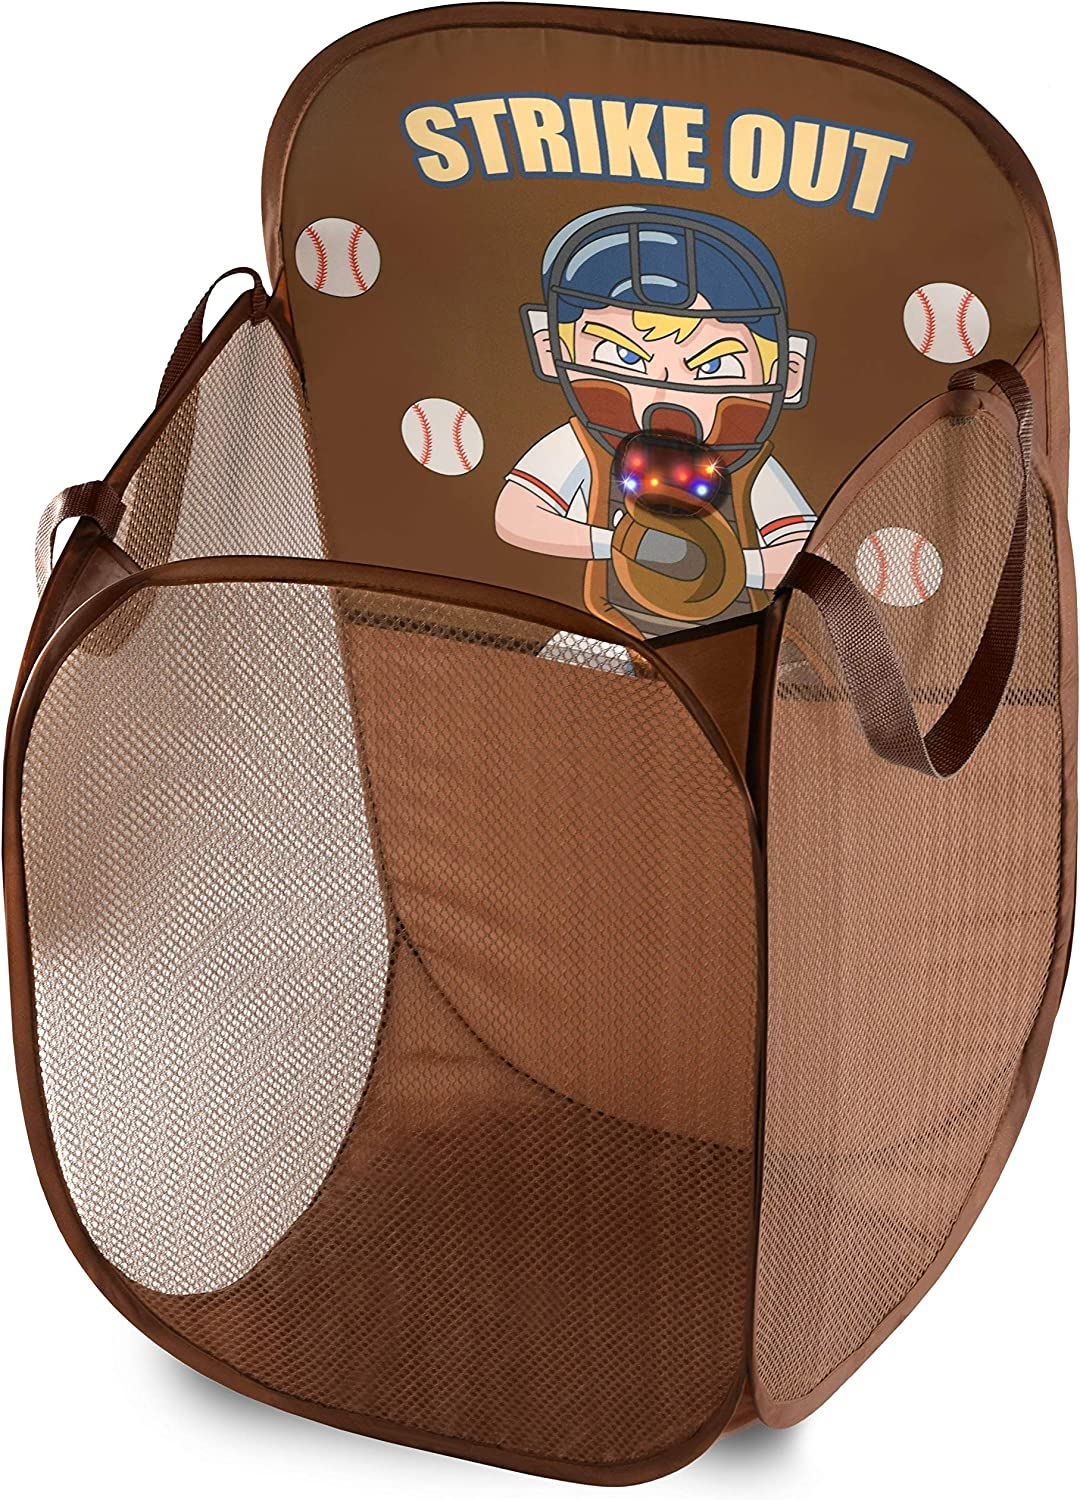 Kids Fun LED Baseball Light-Up Mesh Pop-up Hamper, Collapsible Space Saving and Easy to Store, Reinforced Heavy Duty Side Carry Handles